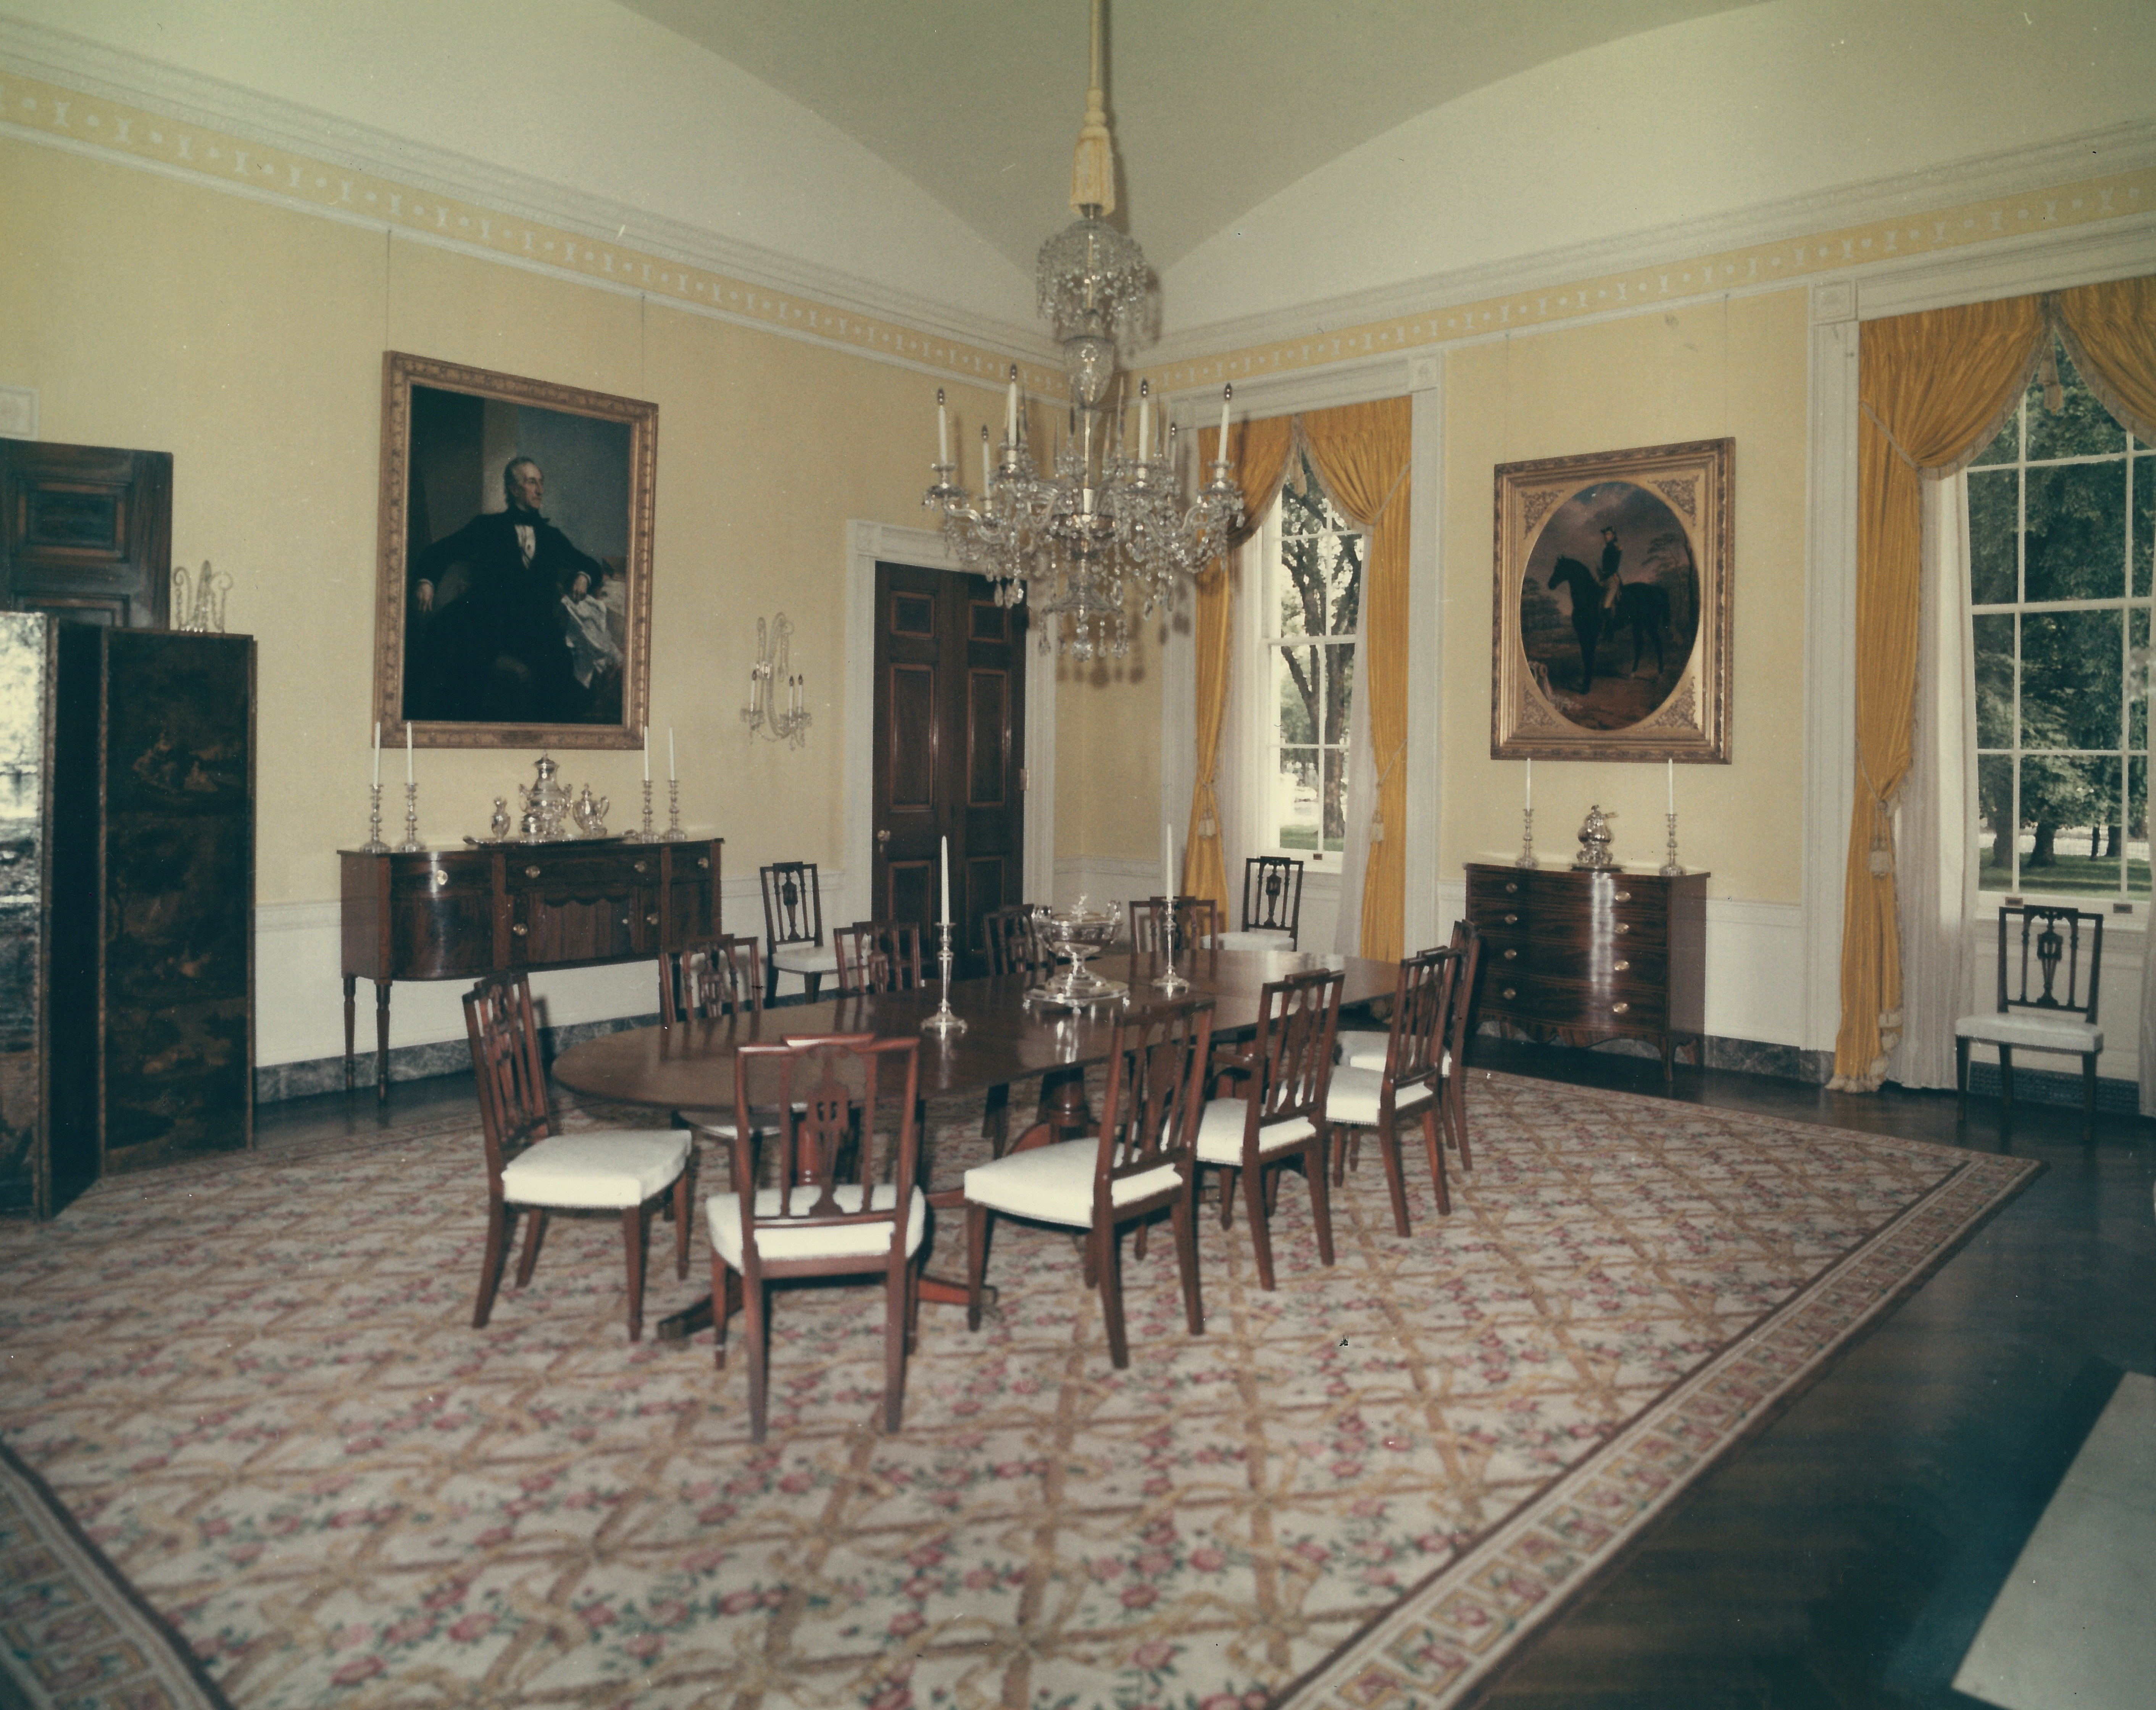 Family Dinning Room At The White House